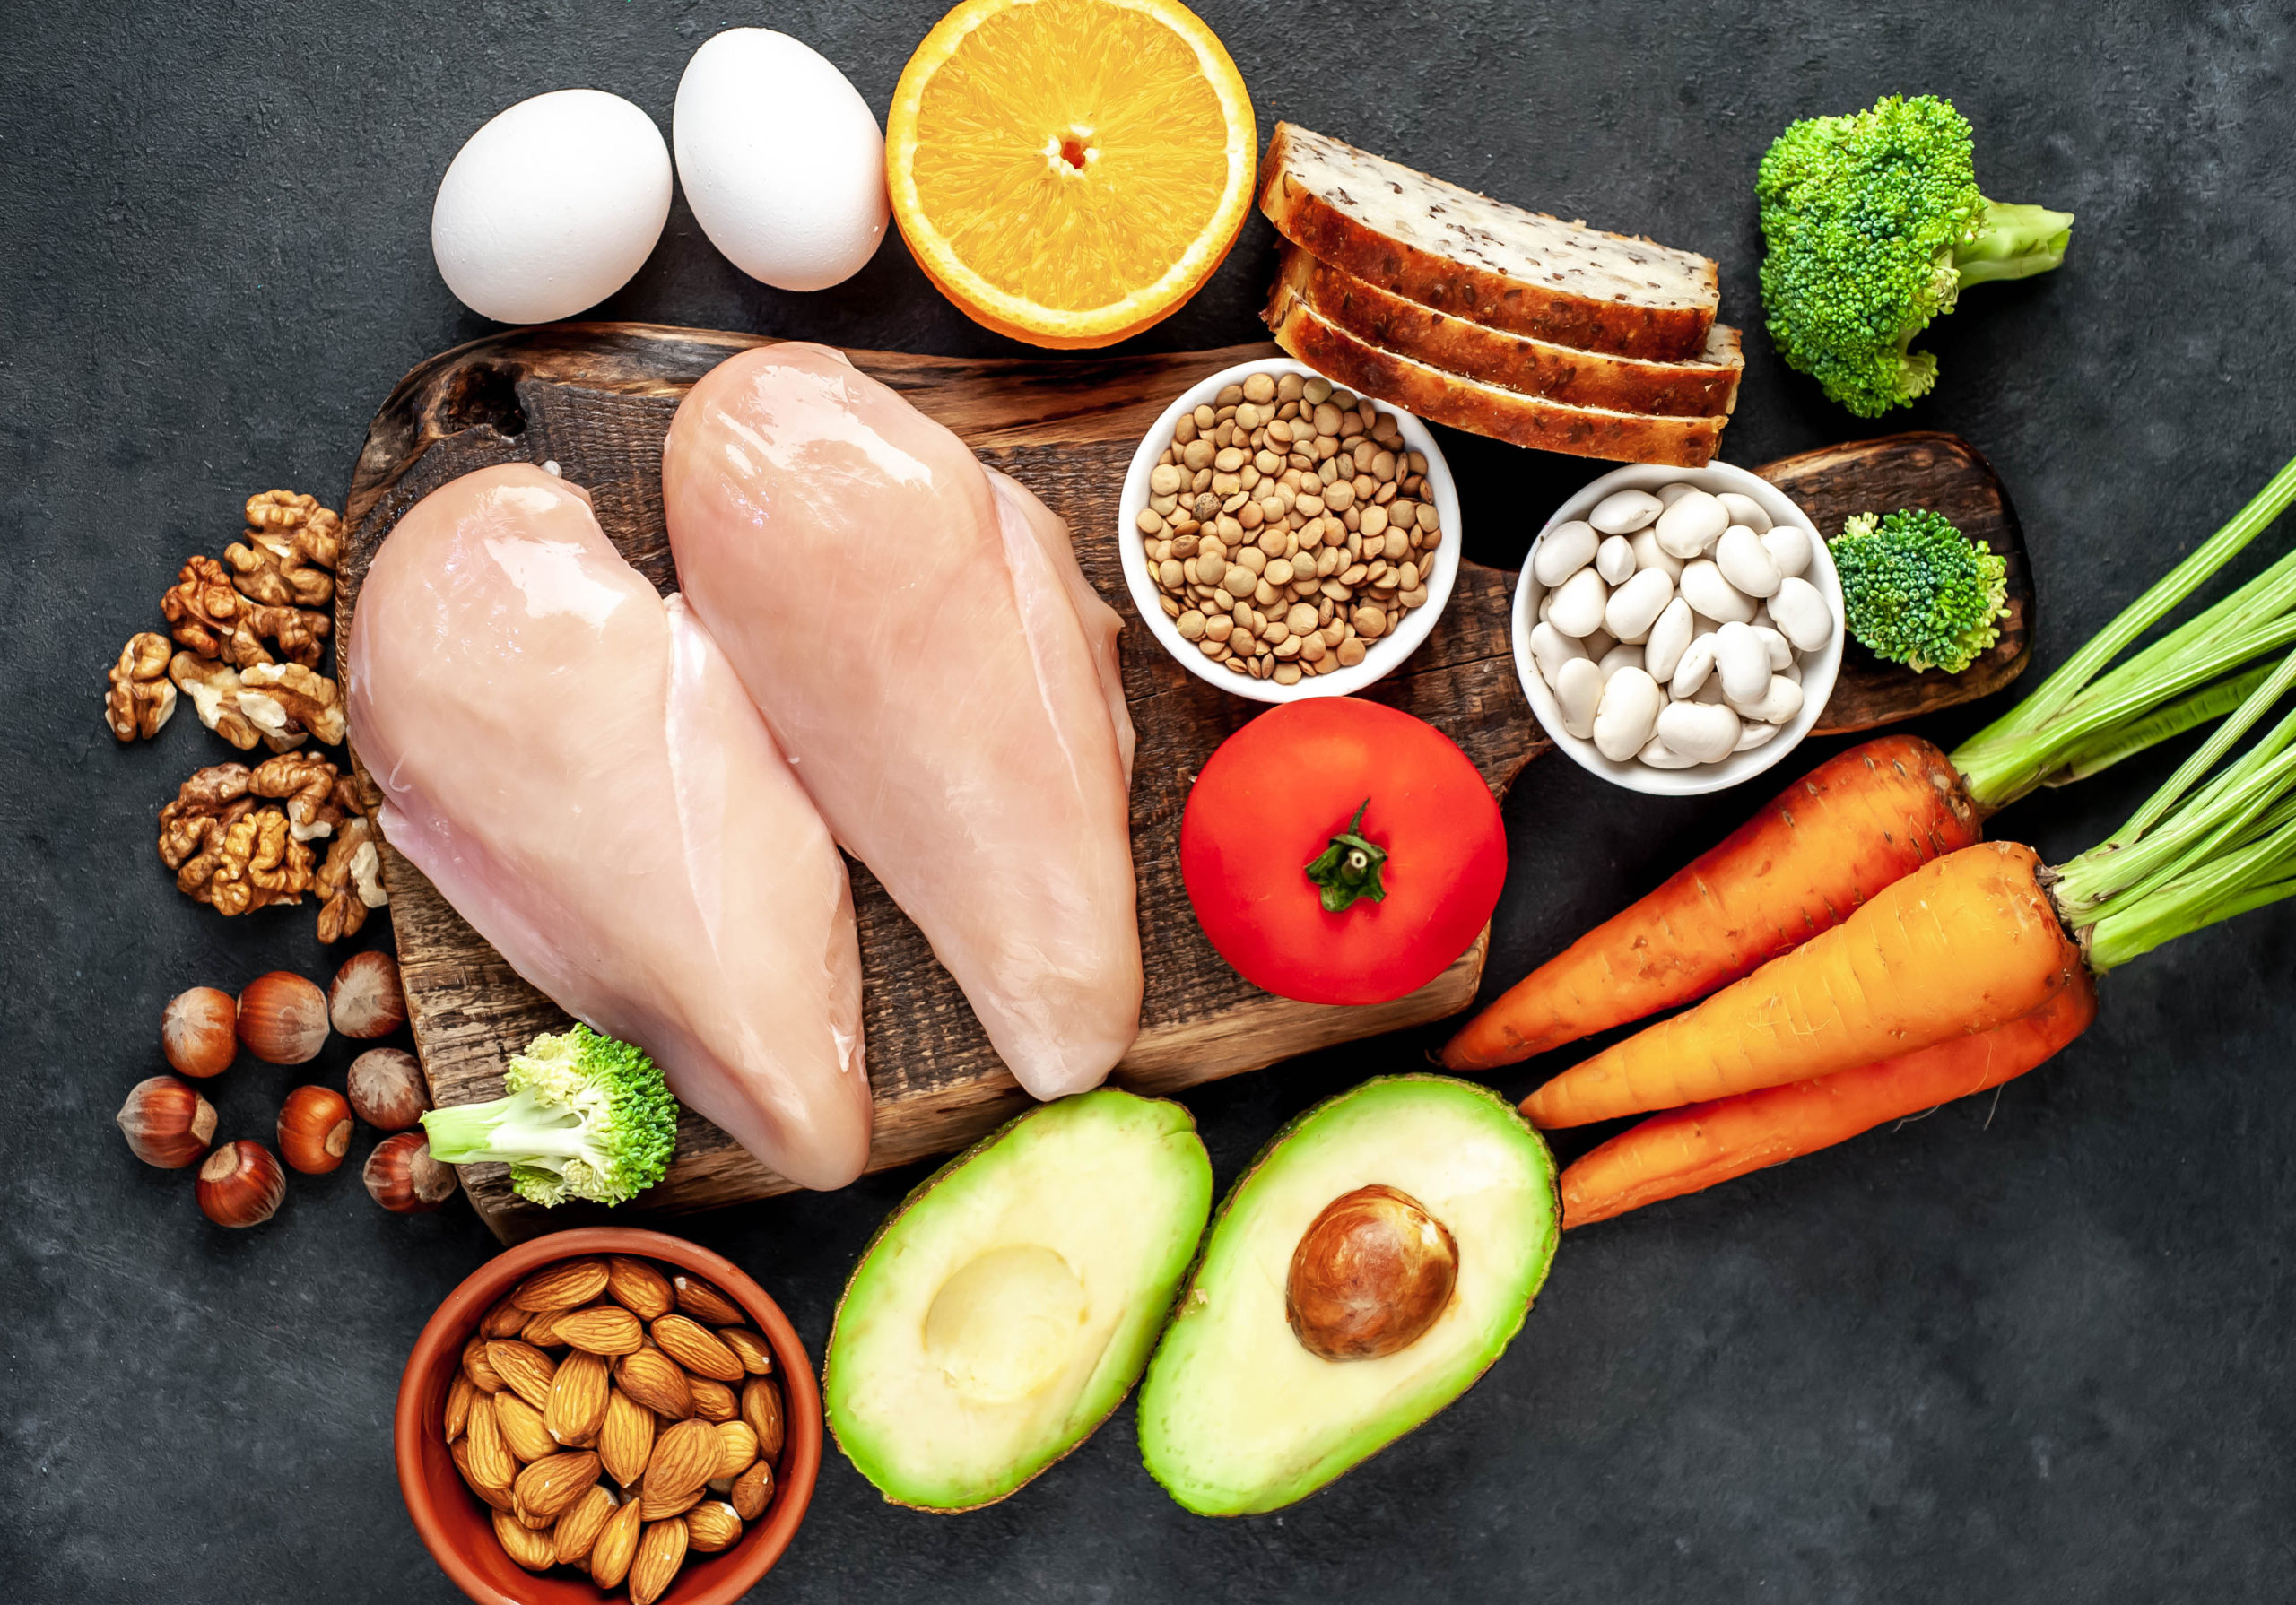 A range of foods high in Niacin (or Vitamin B3) including legumes, nuts, seeds, carrots, chicken, avocado, eggs, grains, broccoli